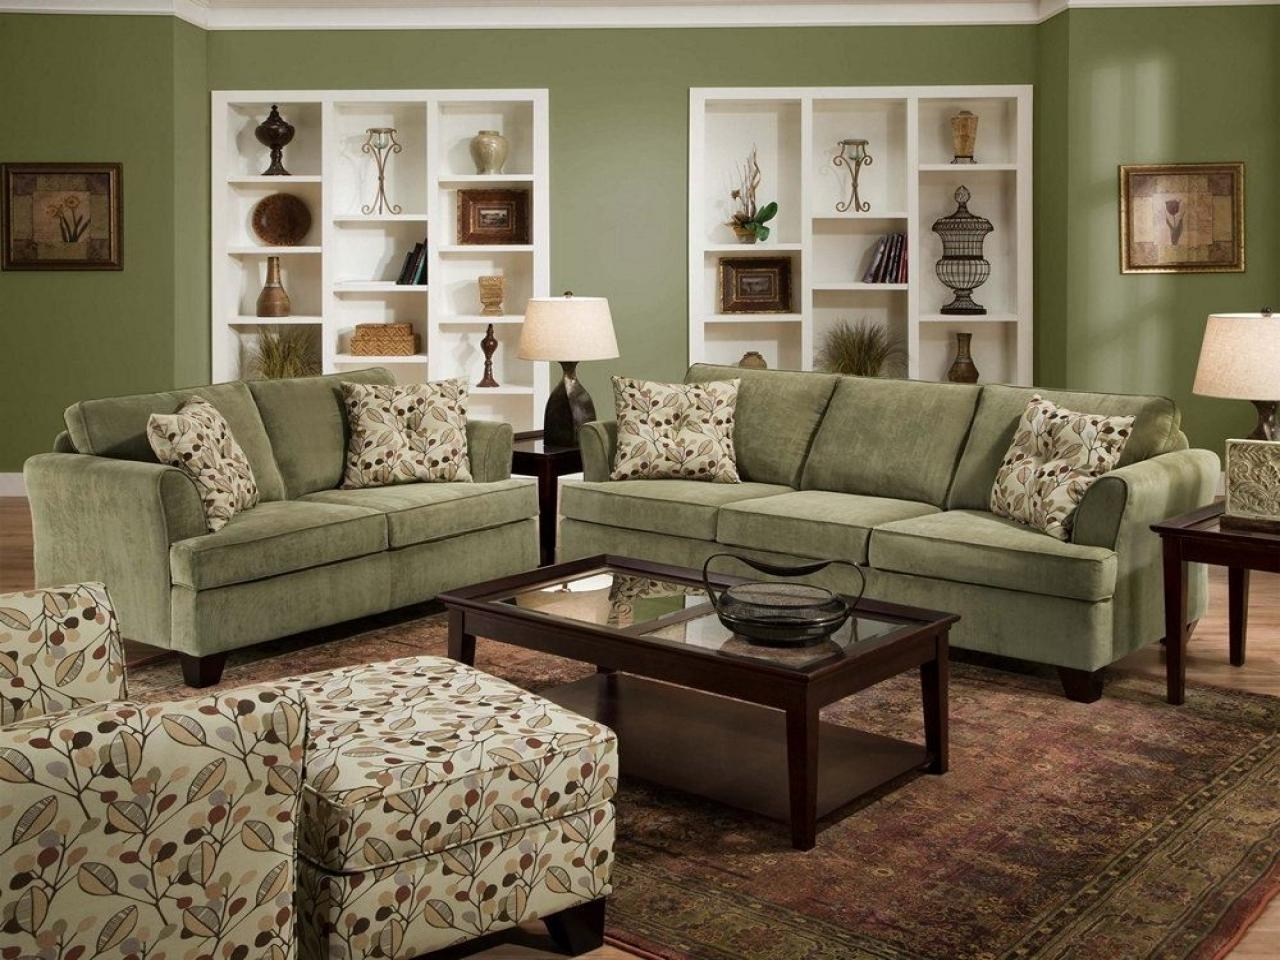 Green Microfiber Sofa With Design Picture 39085 | Kengire Regarding Green Microfiber Sofas (Image 13 of 20)